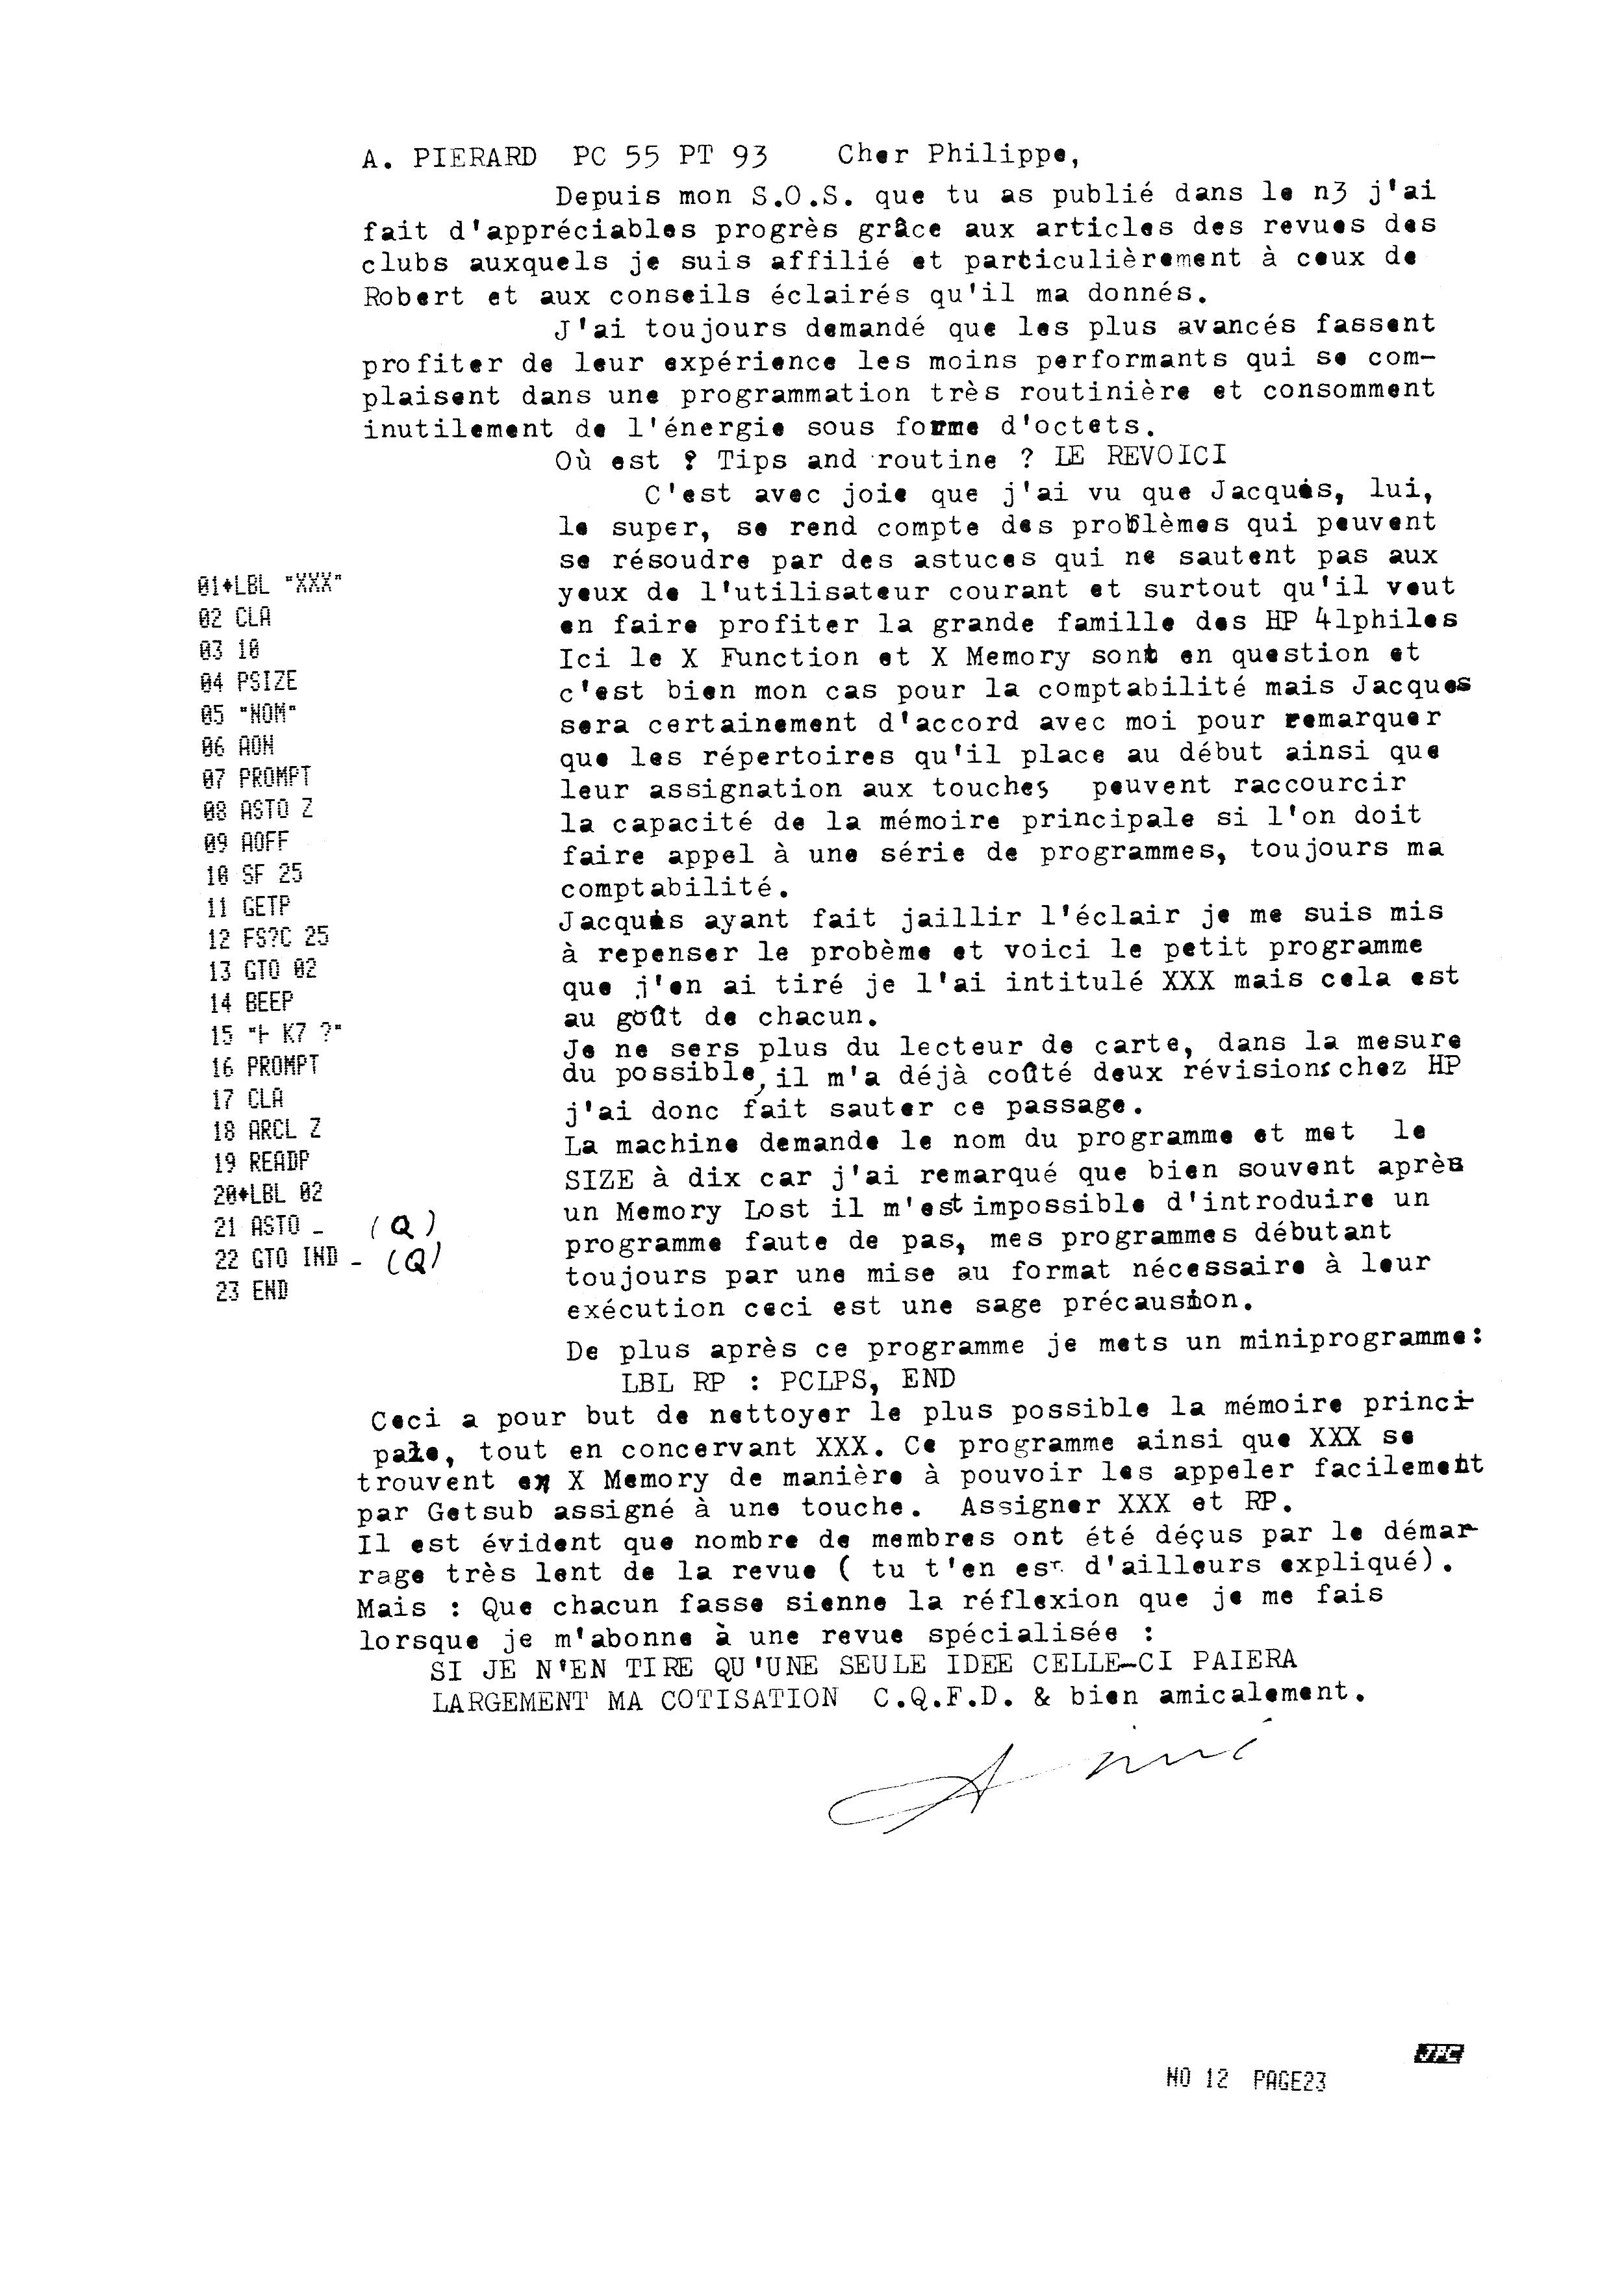 Jp-12-page-23-1000